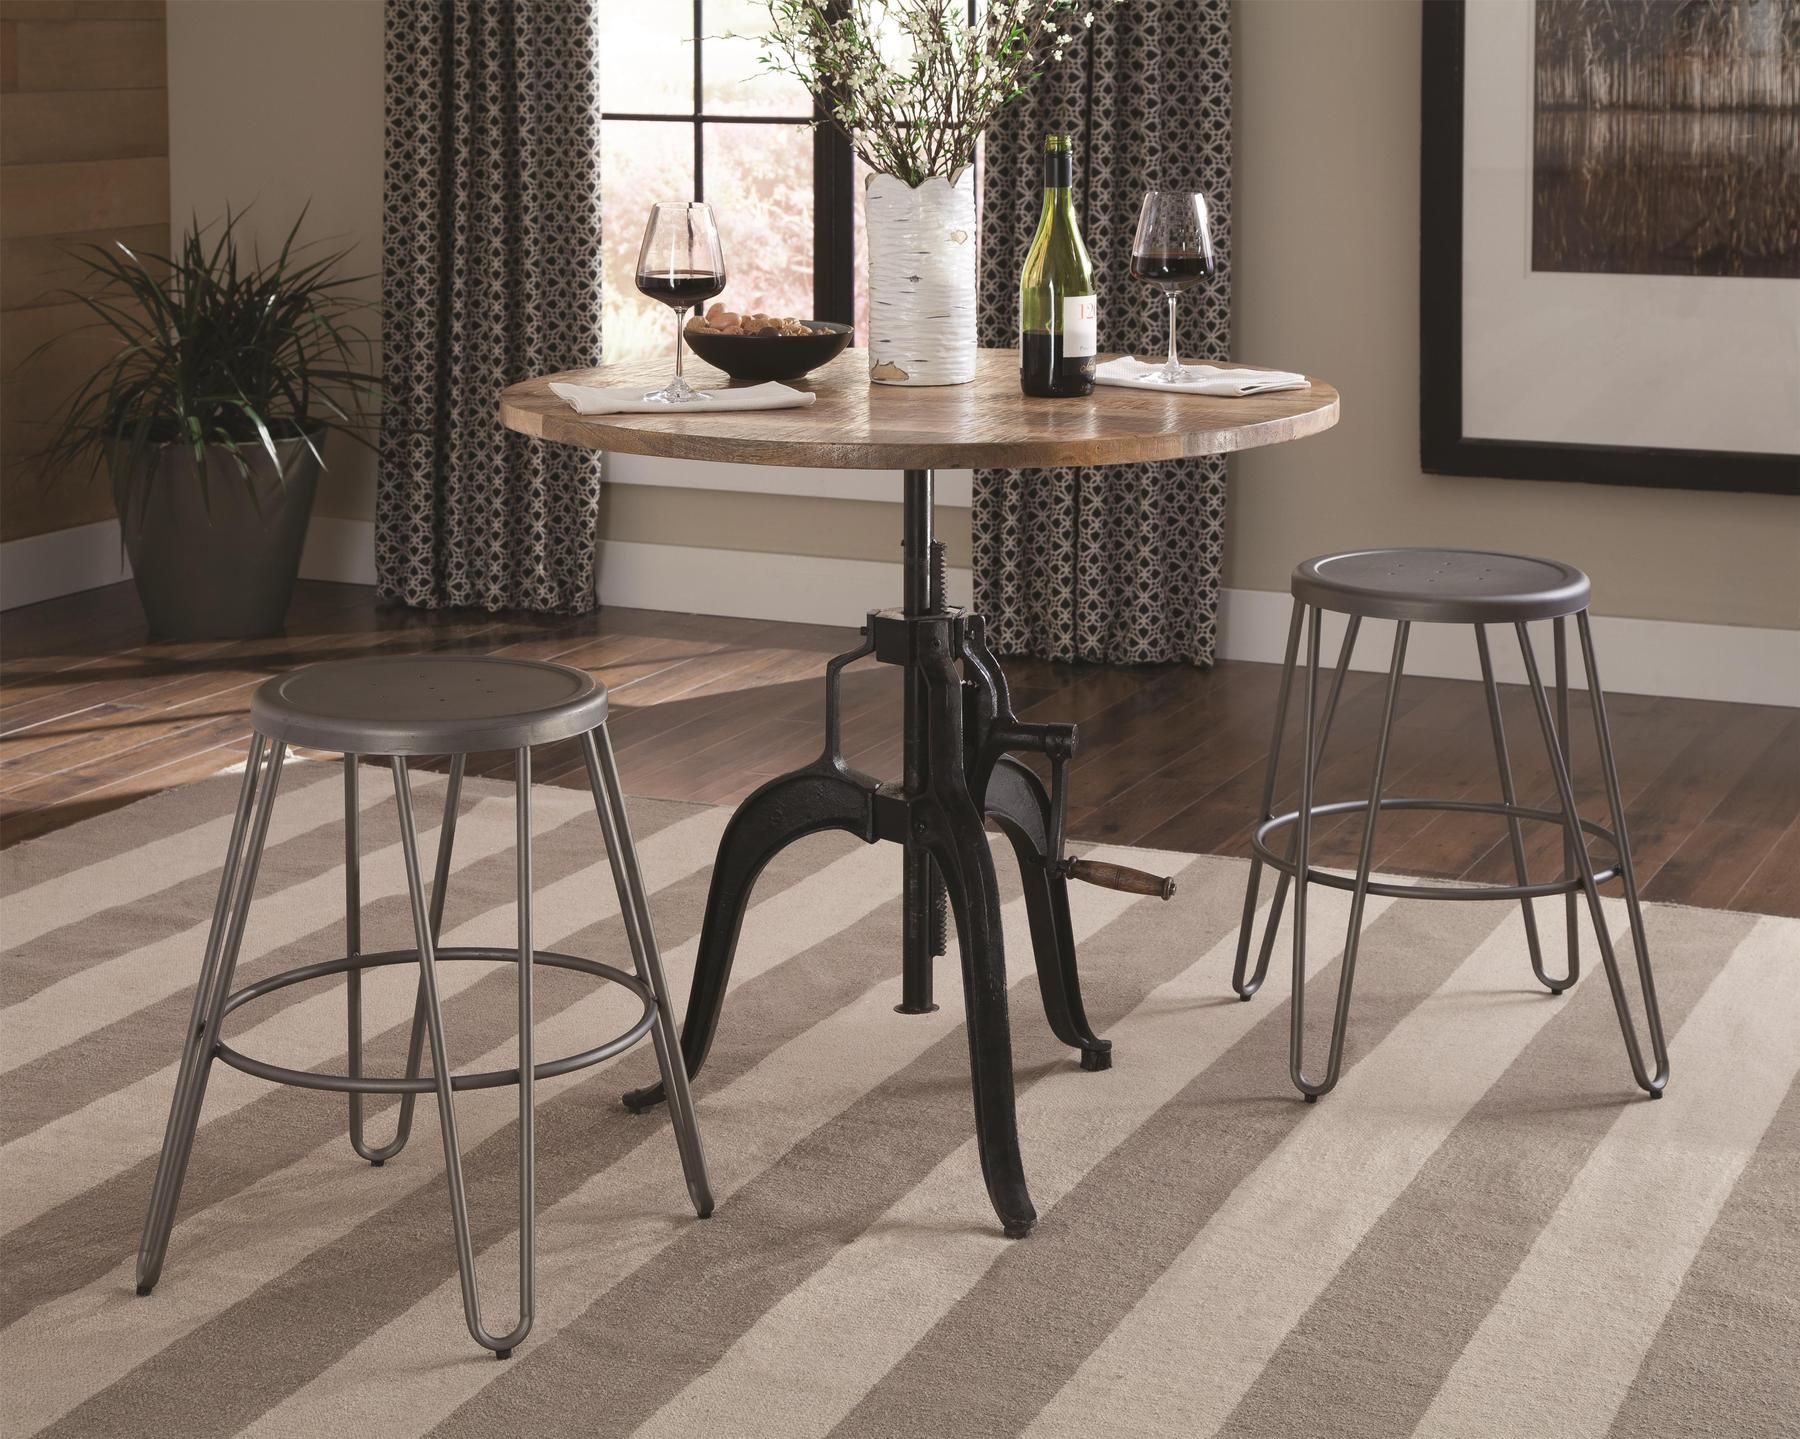 Galway Bar Table | Coaster Fine Furniture, Coaster With Regard To Best And Newest Baring 35'' Dining Tables (View 2 of 15)